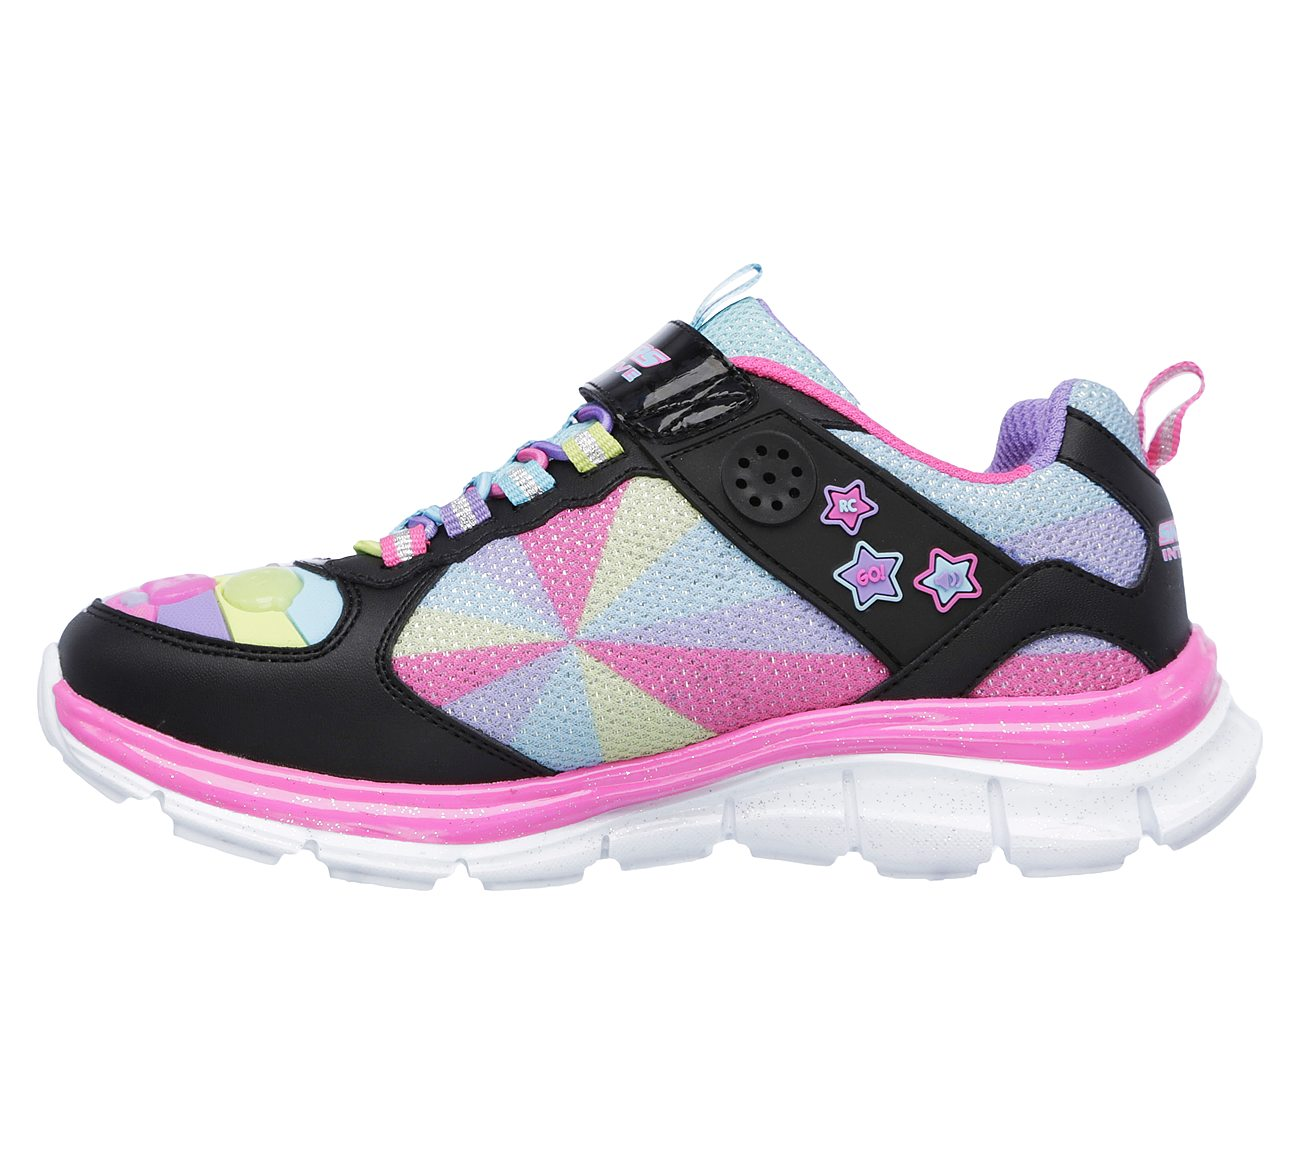 Skechers Juicy Smash Game Kicks 2 BlackMulti Kids Girls Sneakers Size 3 | eBay